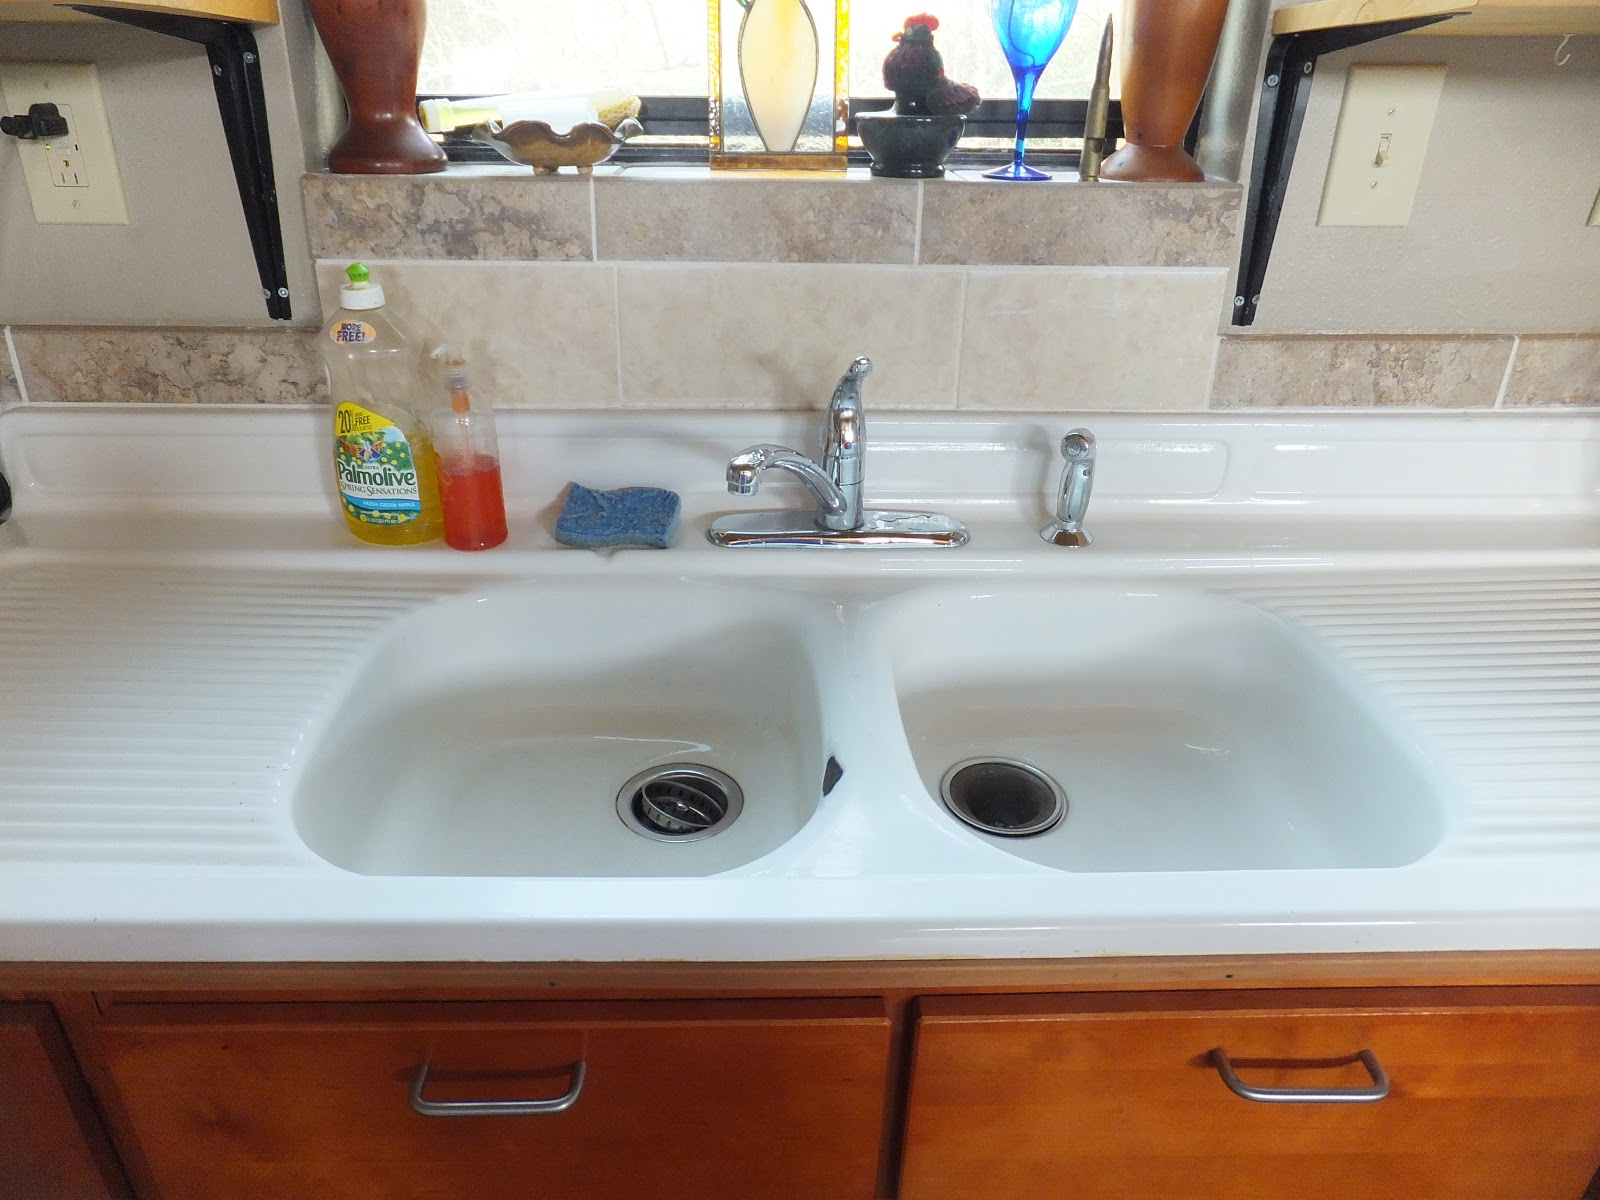 Old Kitchen Sink With Drainboard Bay Window Seat Table Kott In The Garden Importance Of A Good